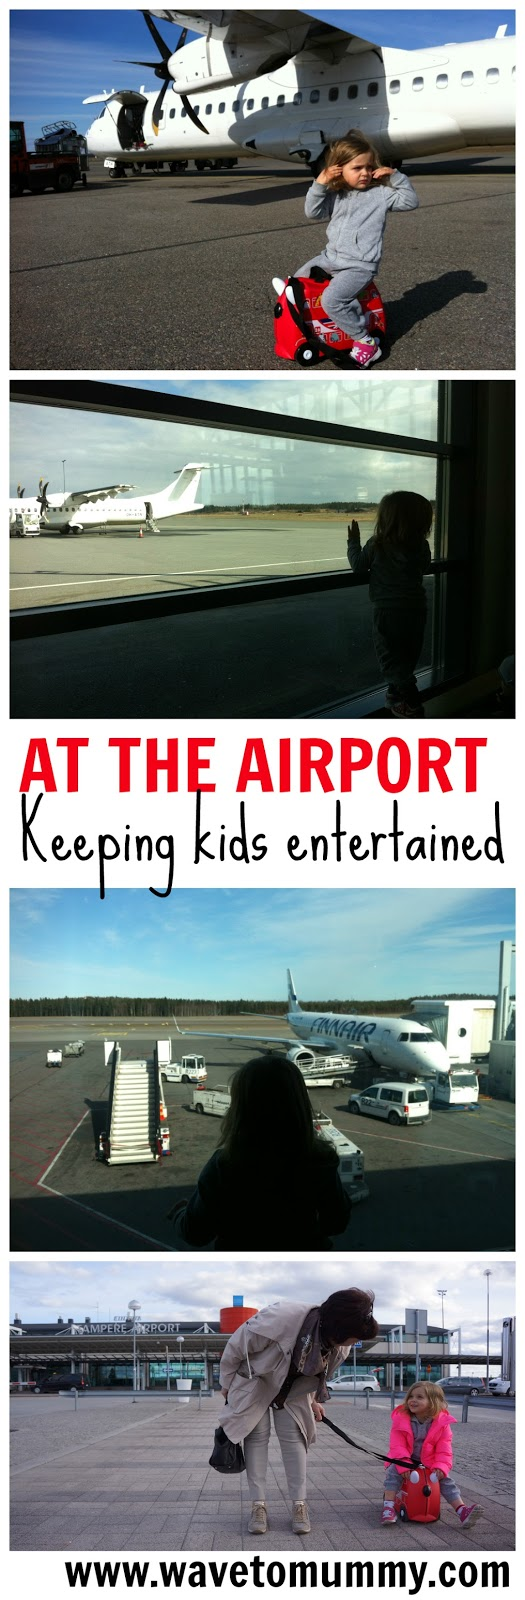 How to entertain toddlers and kids at the airport. Three great ways to keep the kids happy and entertained when at the airport. Includes lots of tips for families and parents for air travel and airport layovers.